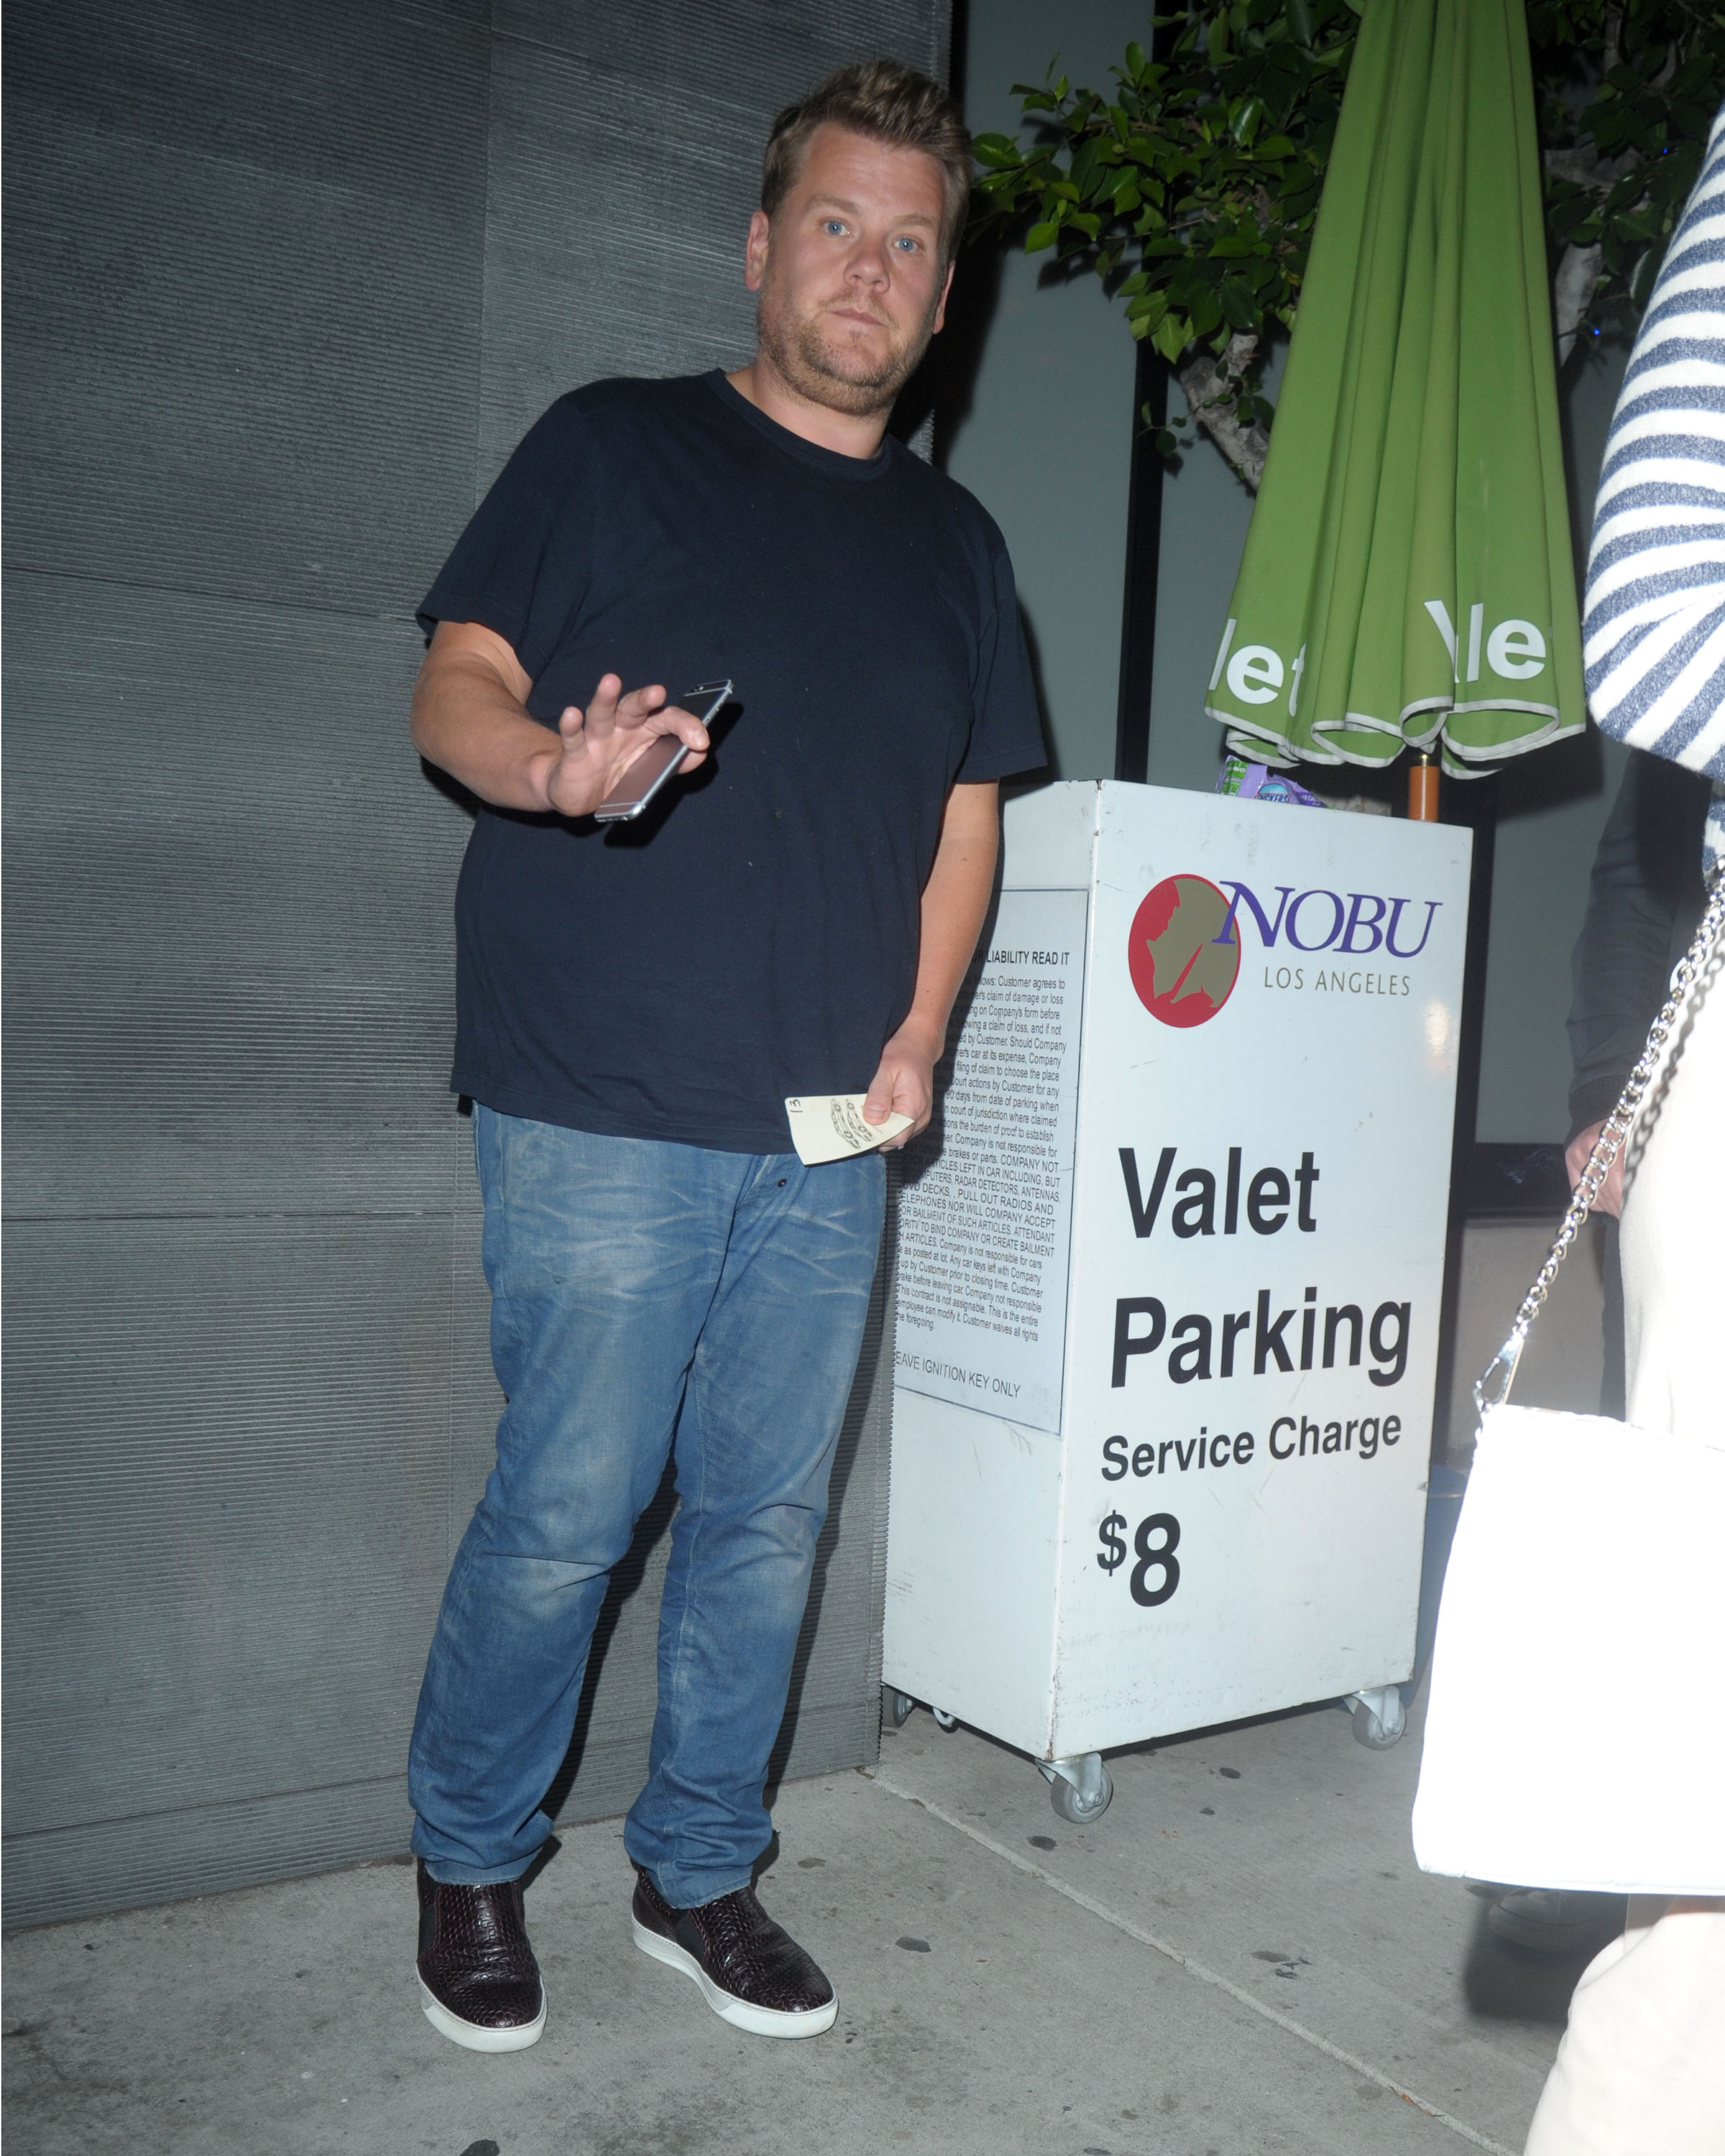 Moonlights as an underdressed valet